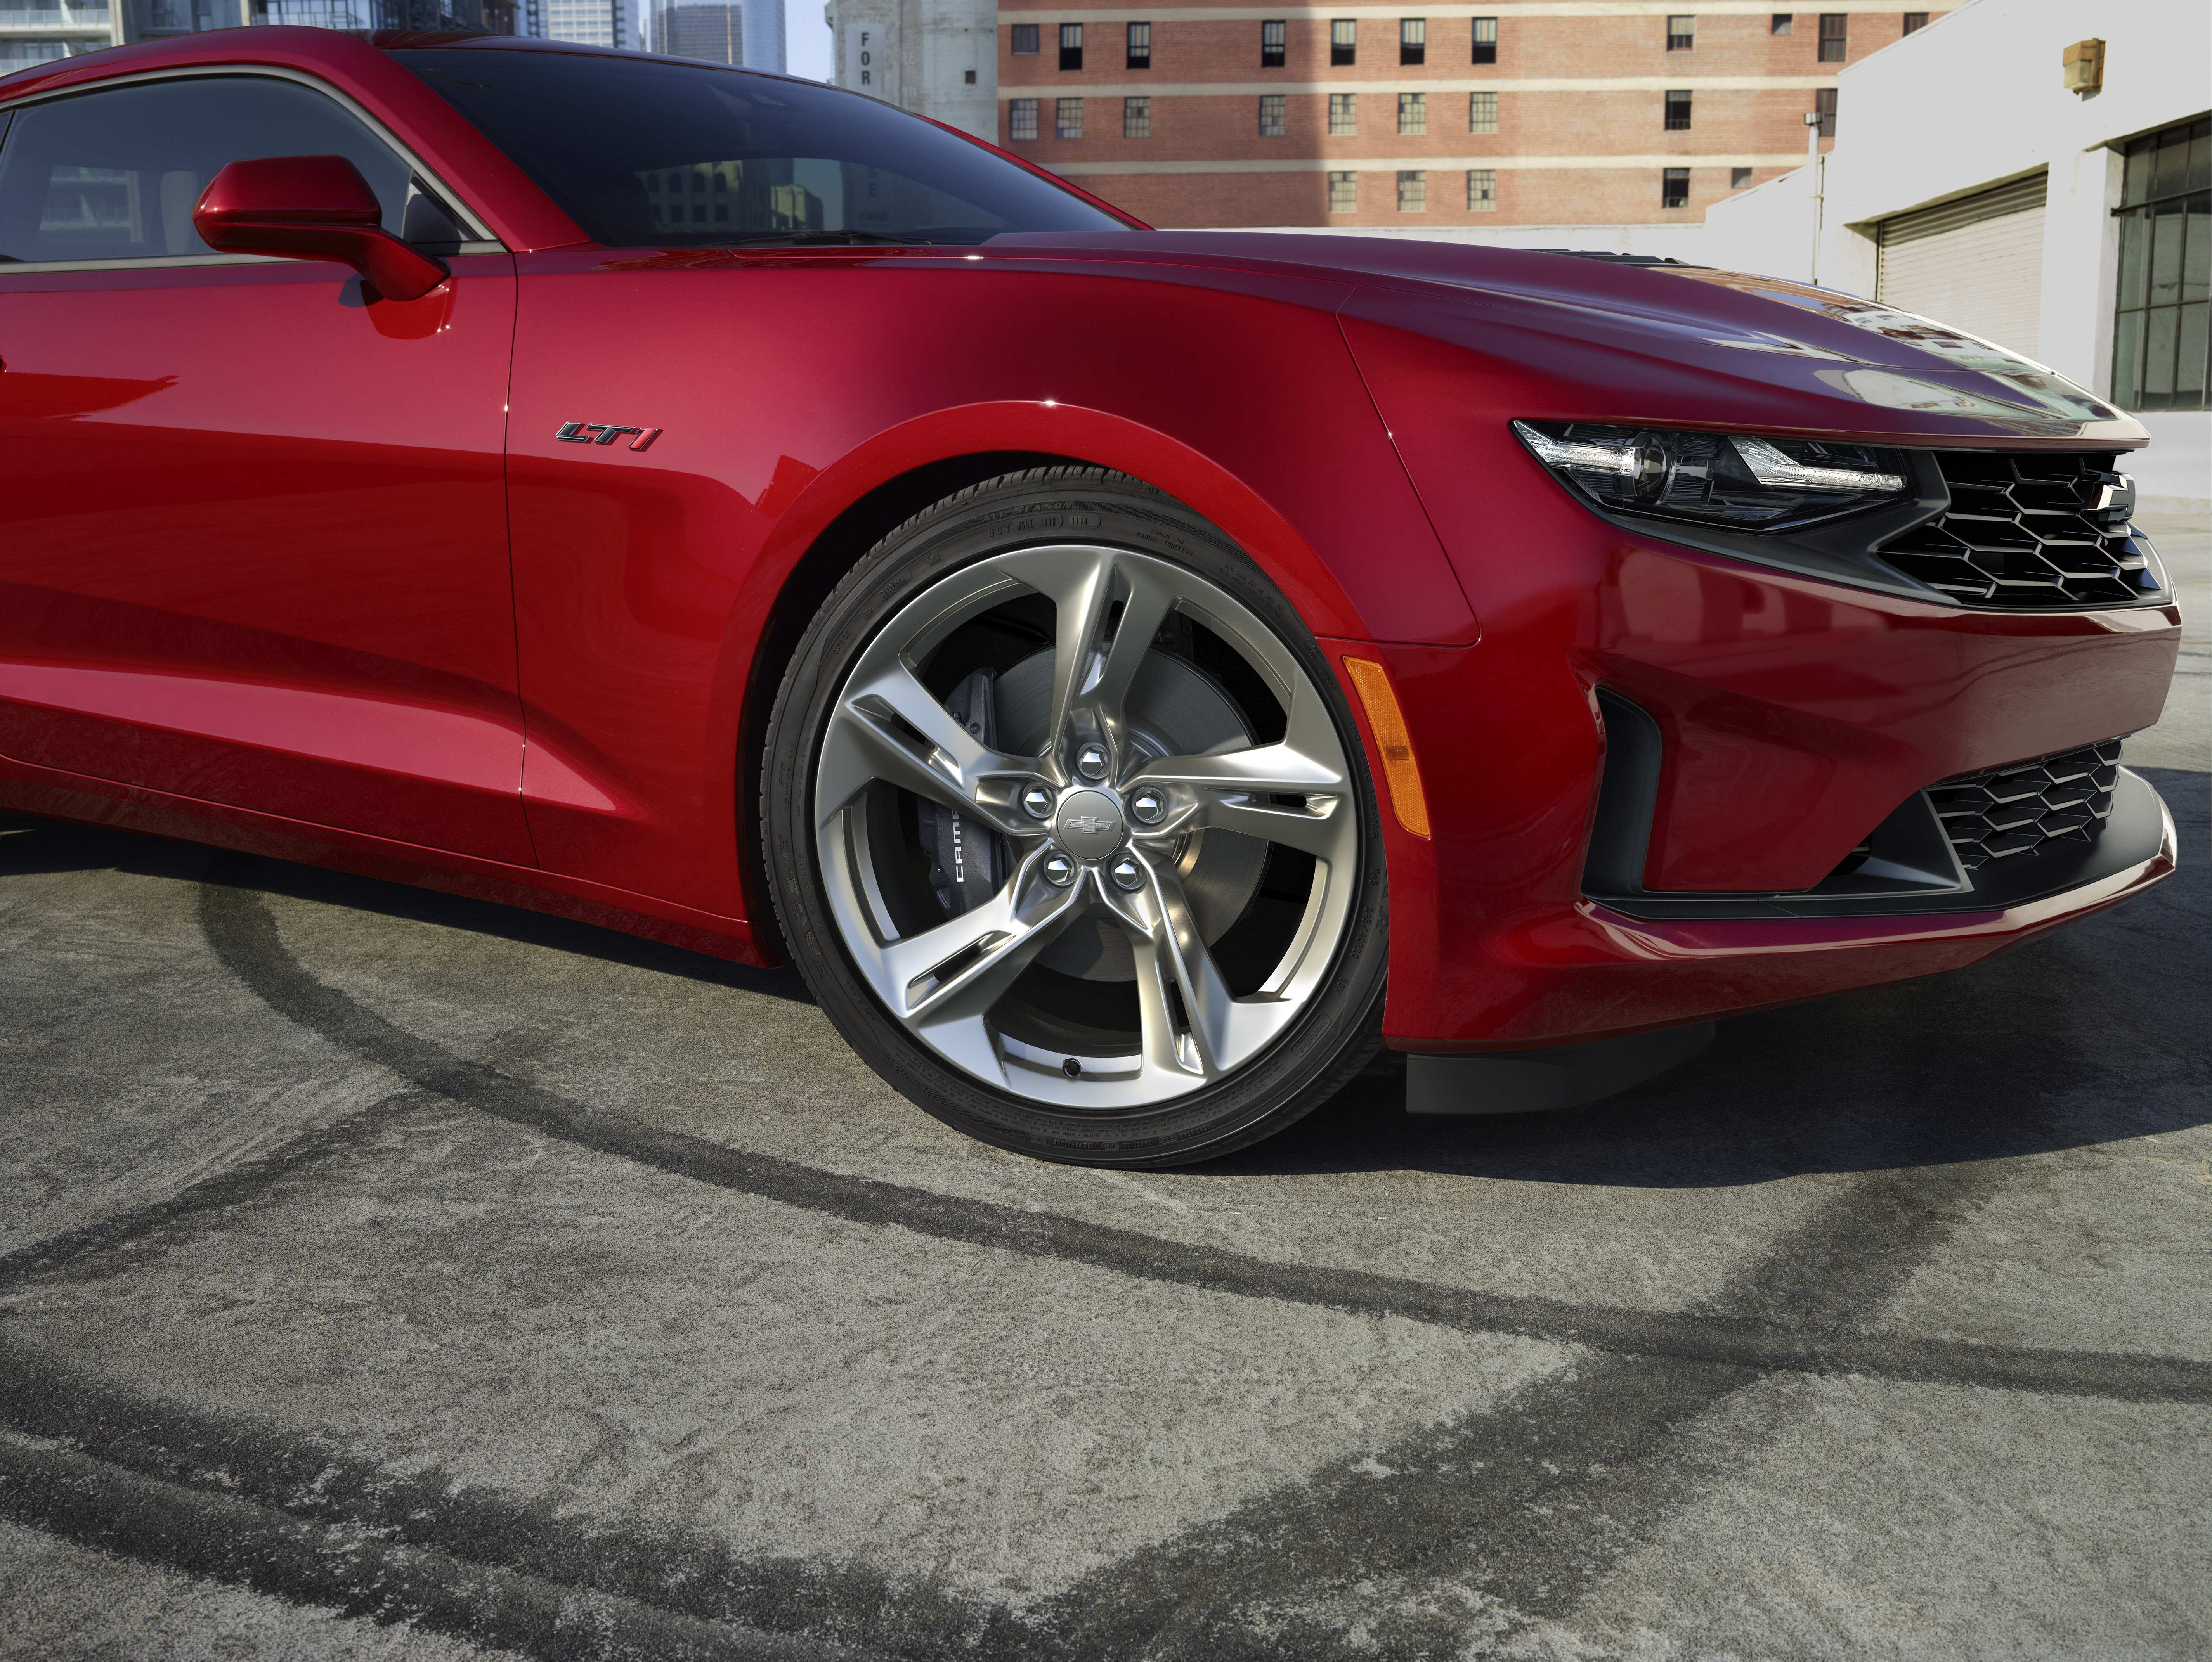 51 A 2020 The Camaro Ss Release